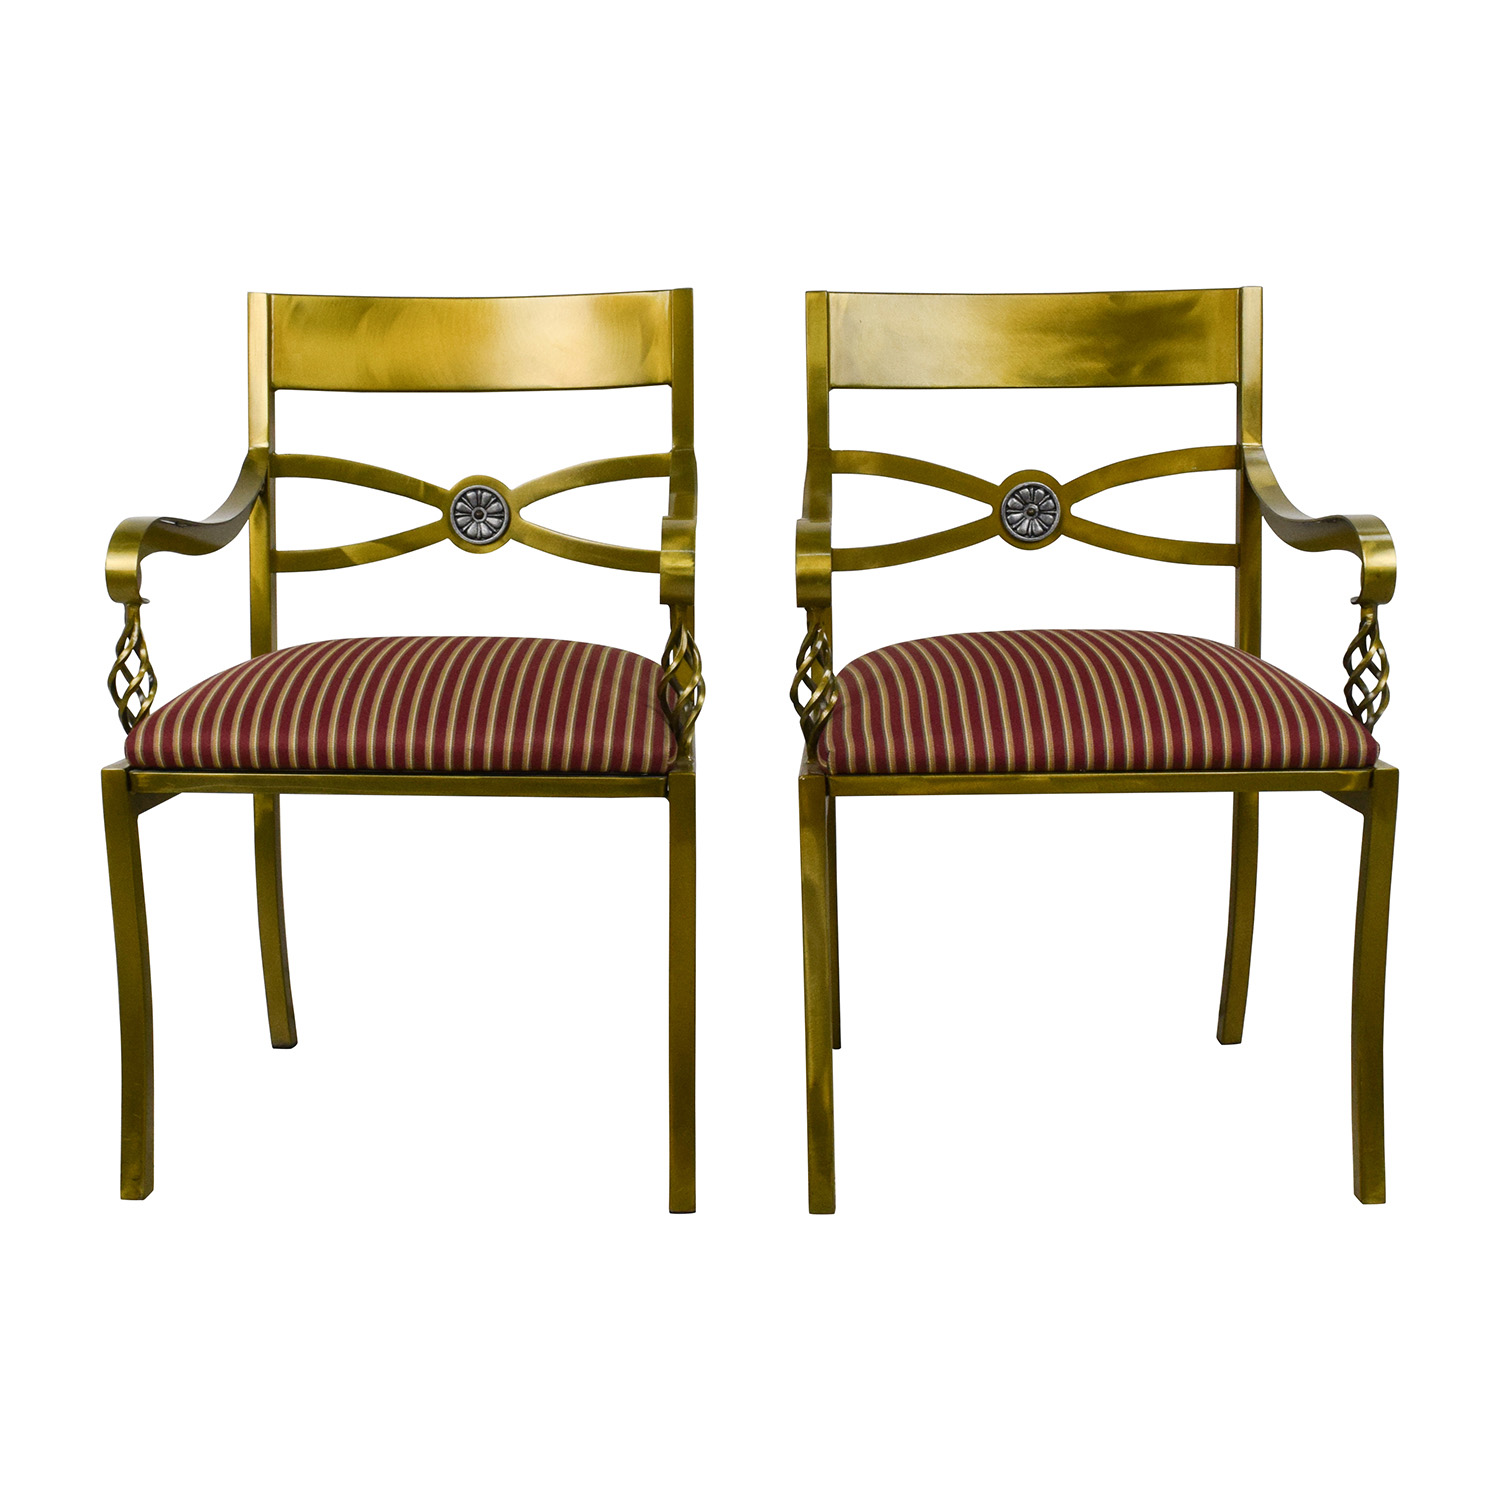 buy Custom Made Antique Gold Wrought Iron Chairs online